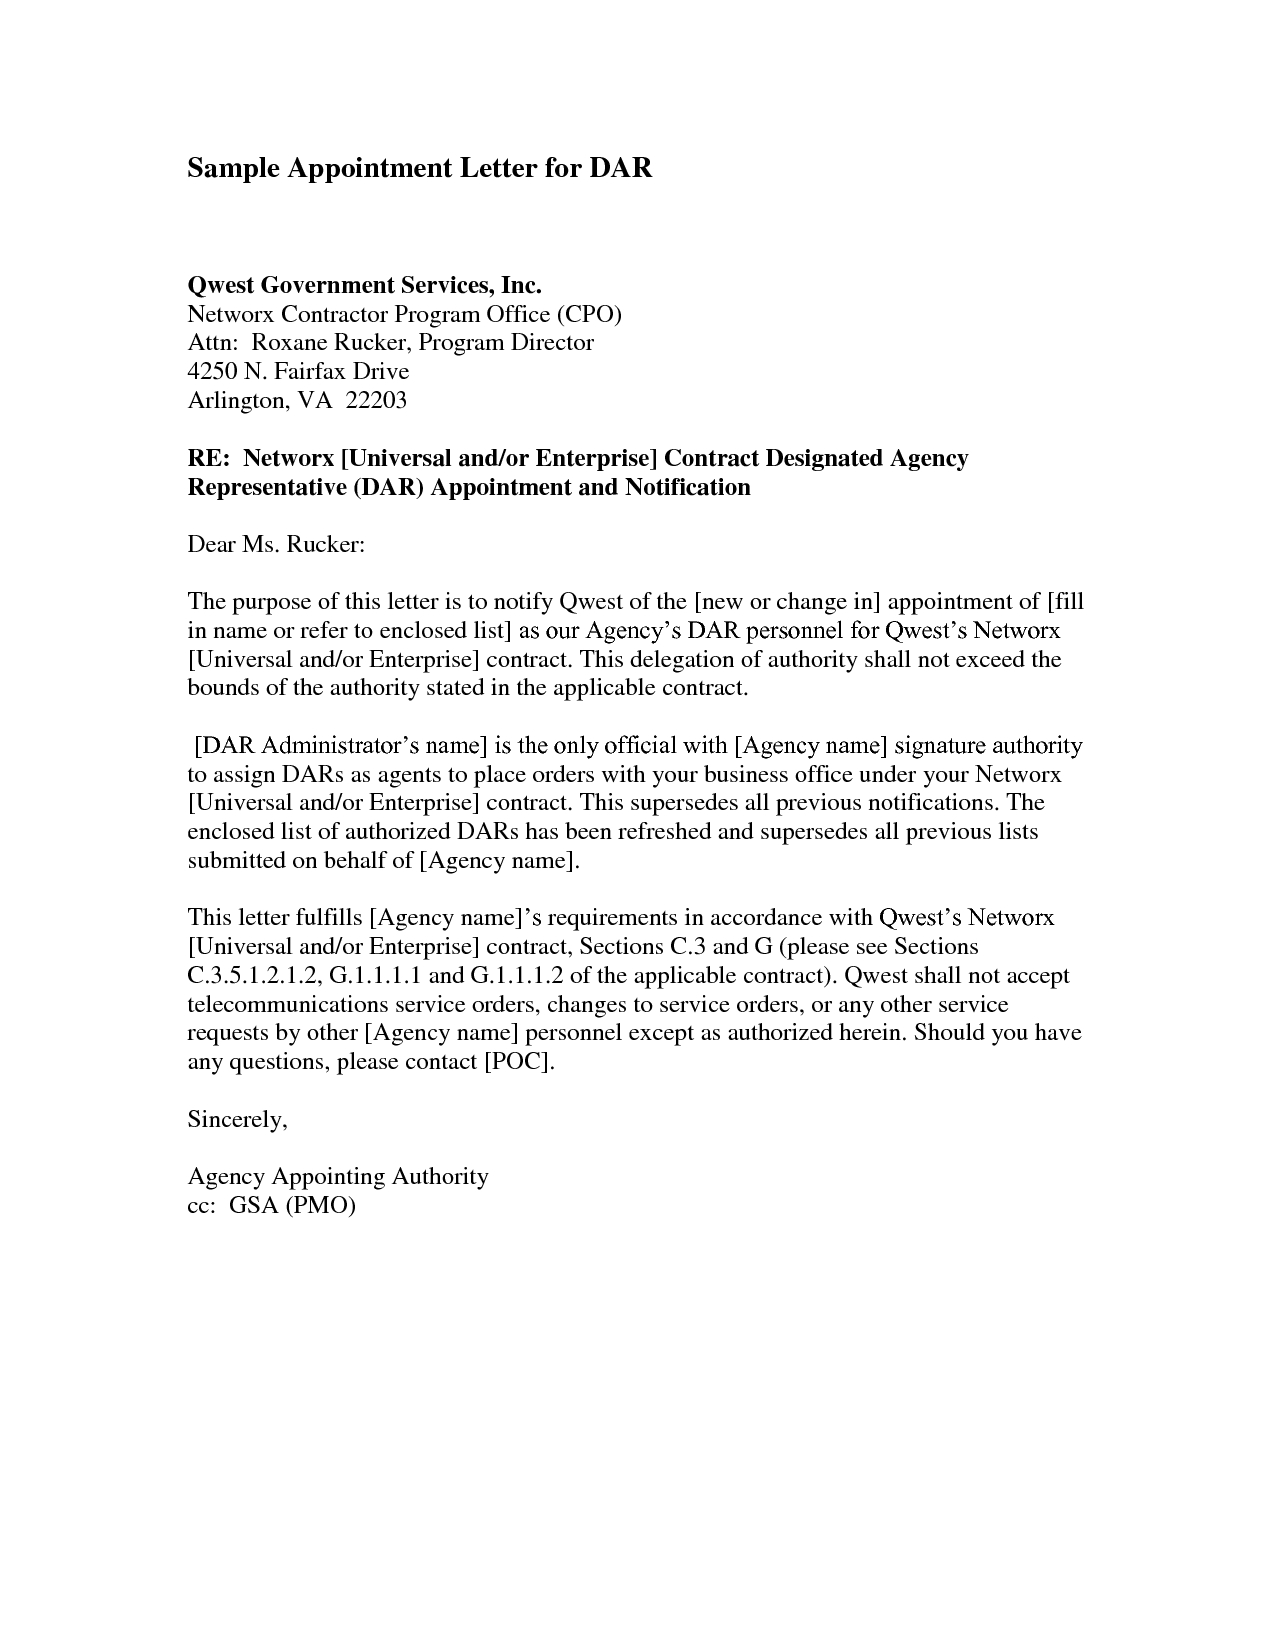 Real Estate Offer Letter Template - Trustee Appointment Letter Director Trustee is Appointed or